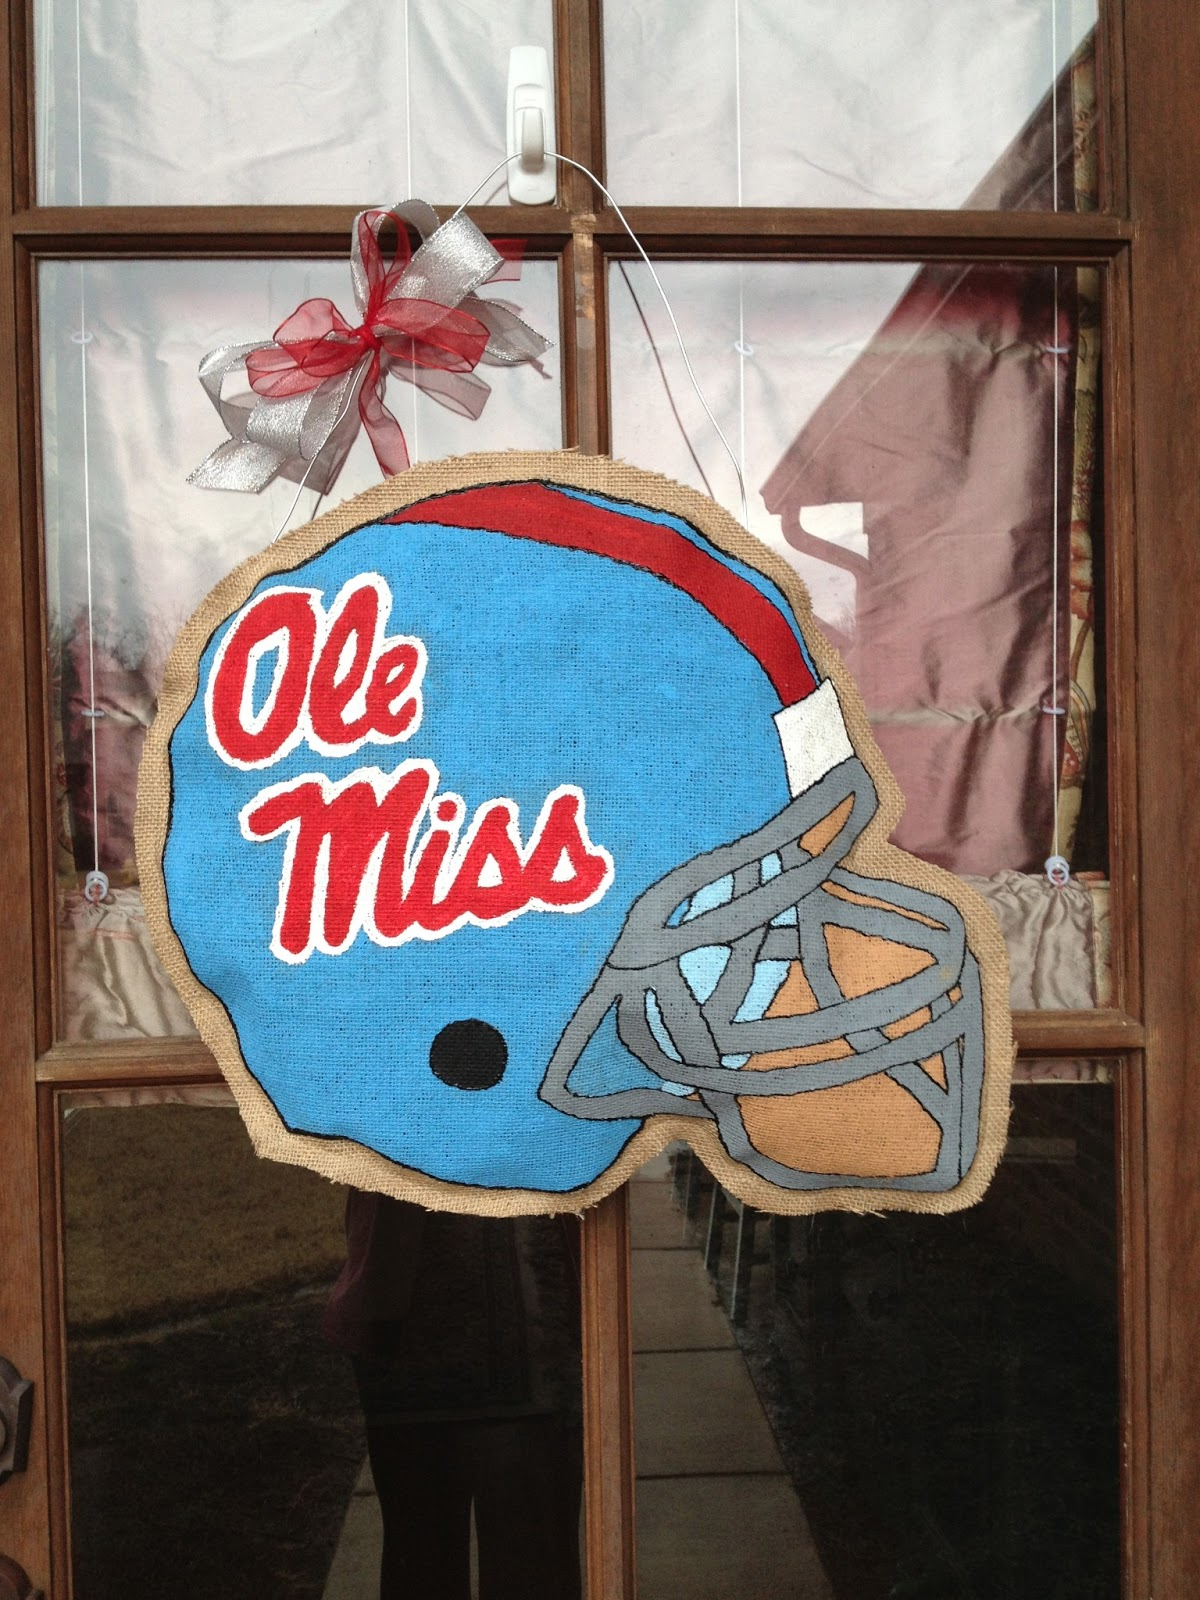 A hotty toddy - 5 4